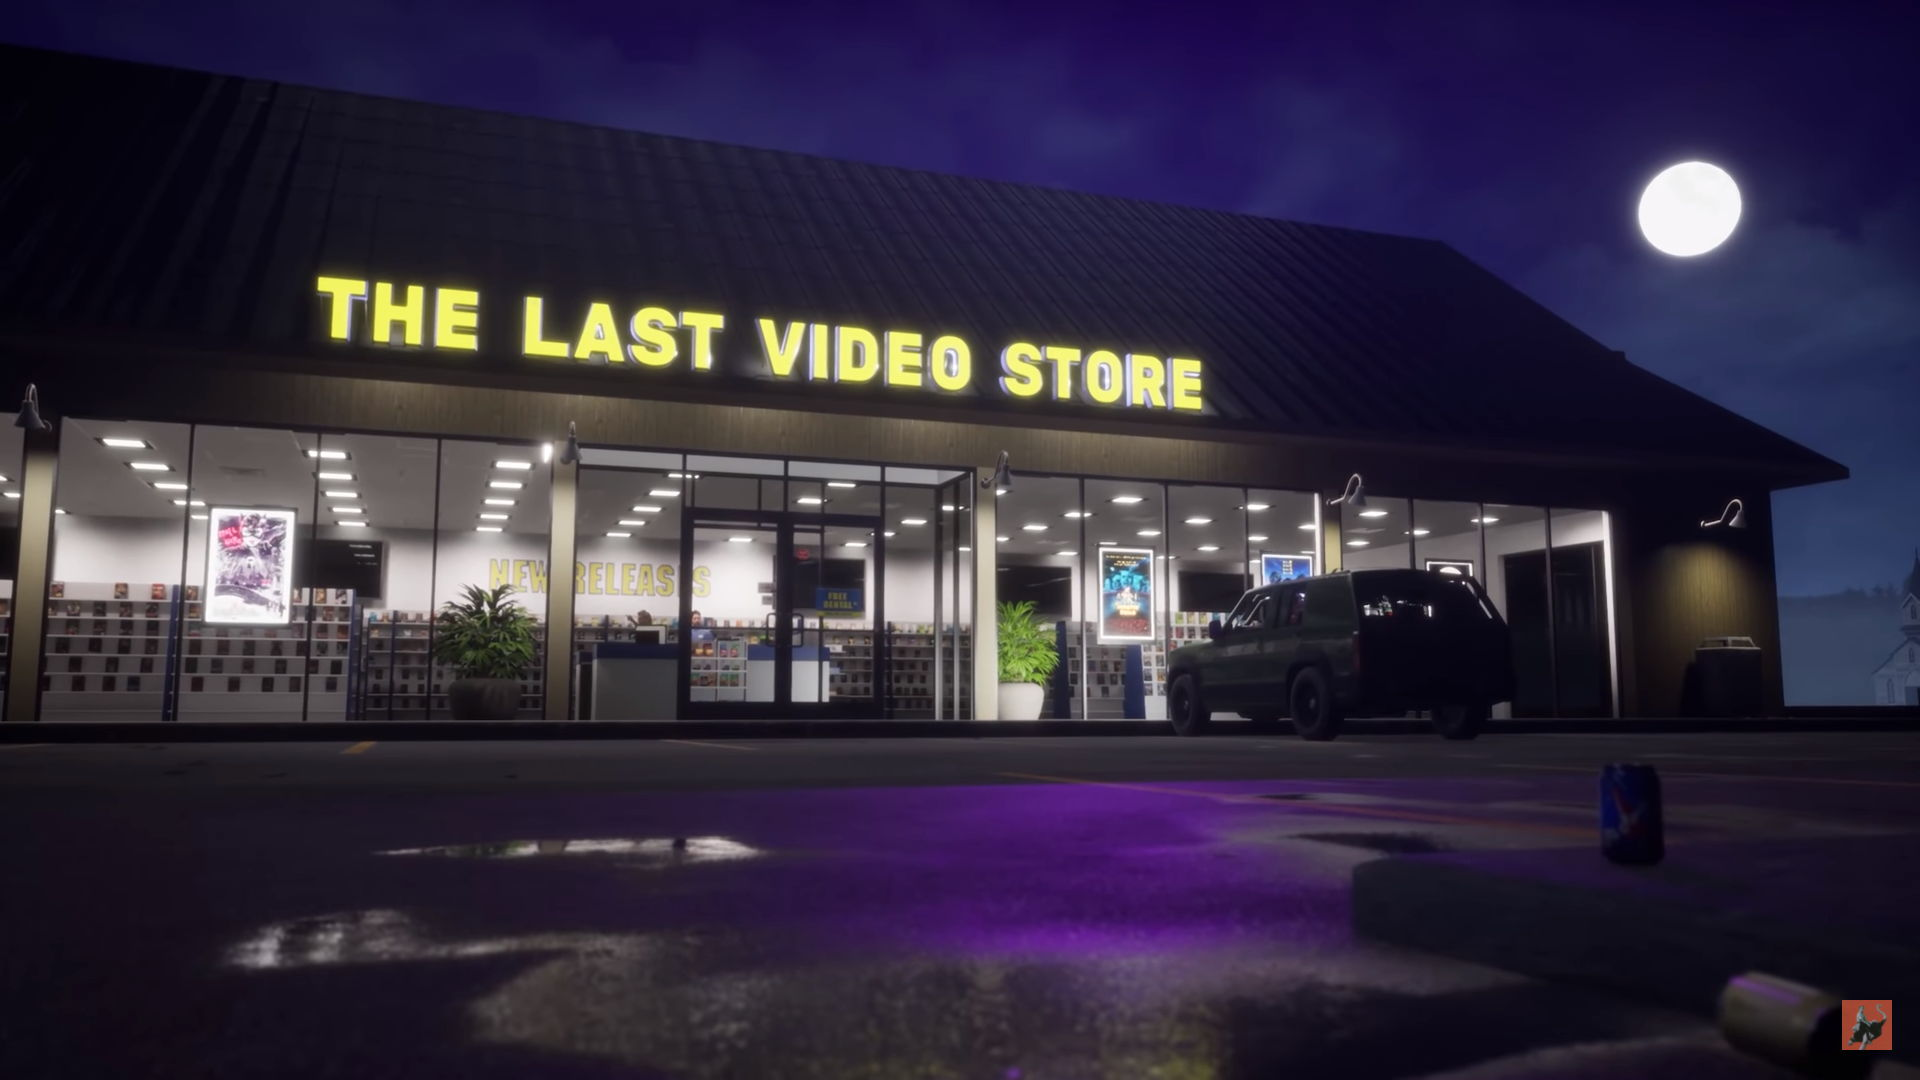 'The Last Video Store' is a Blockbuster-inspired game coming to PSVR | Engadget